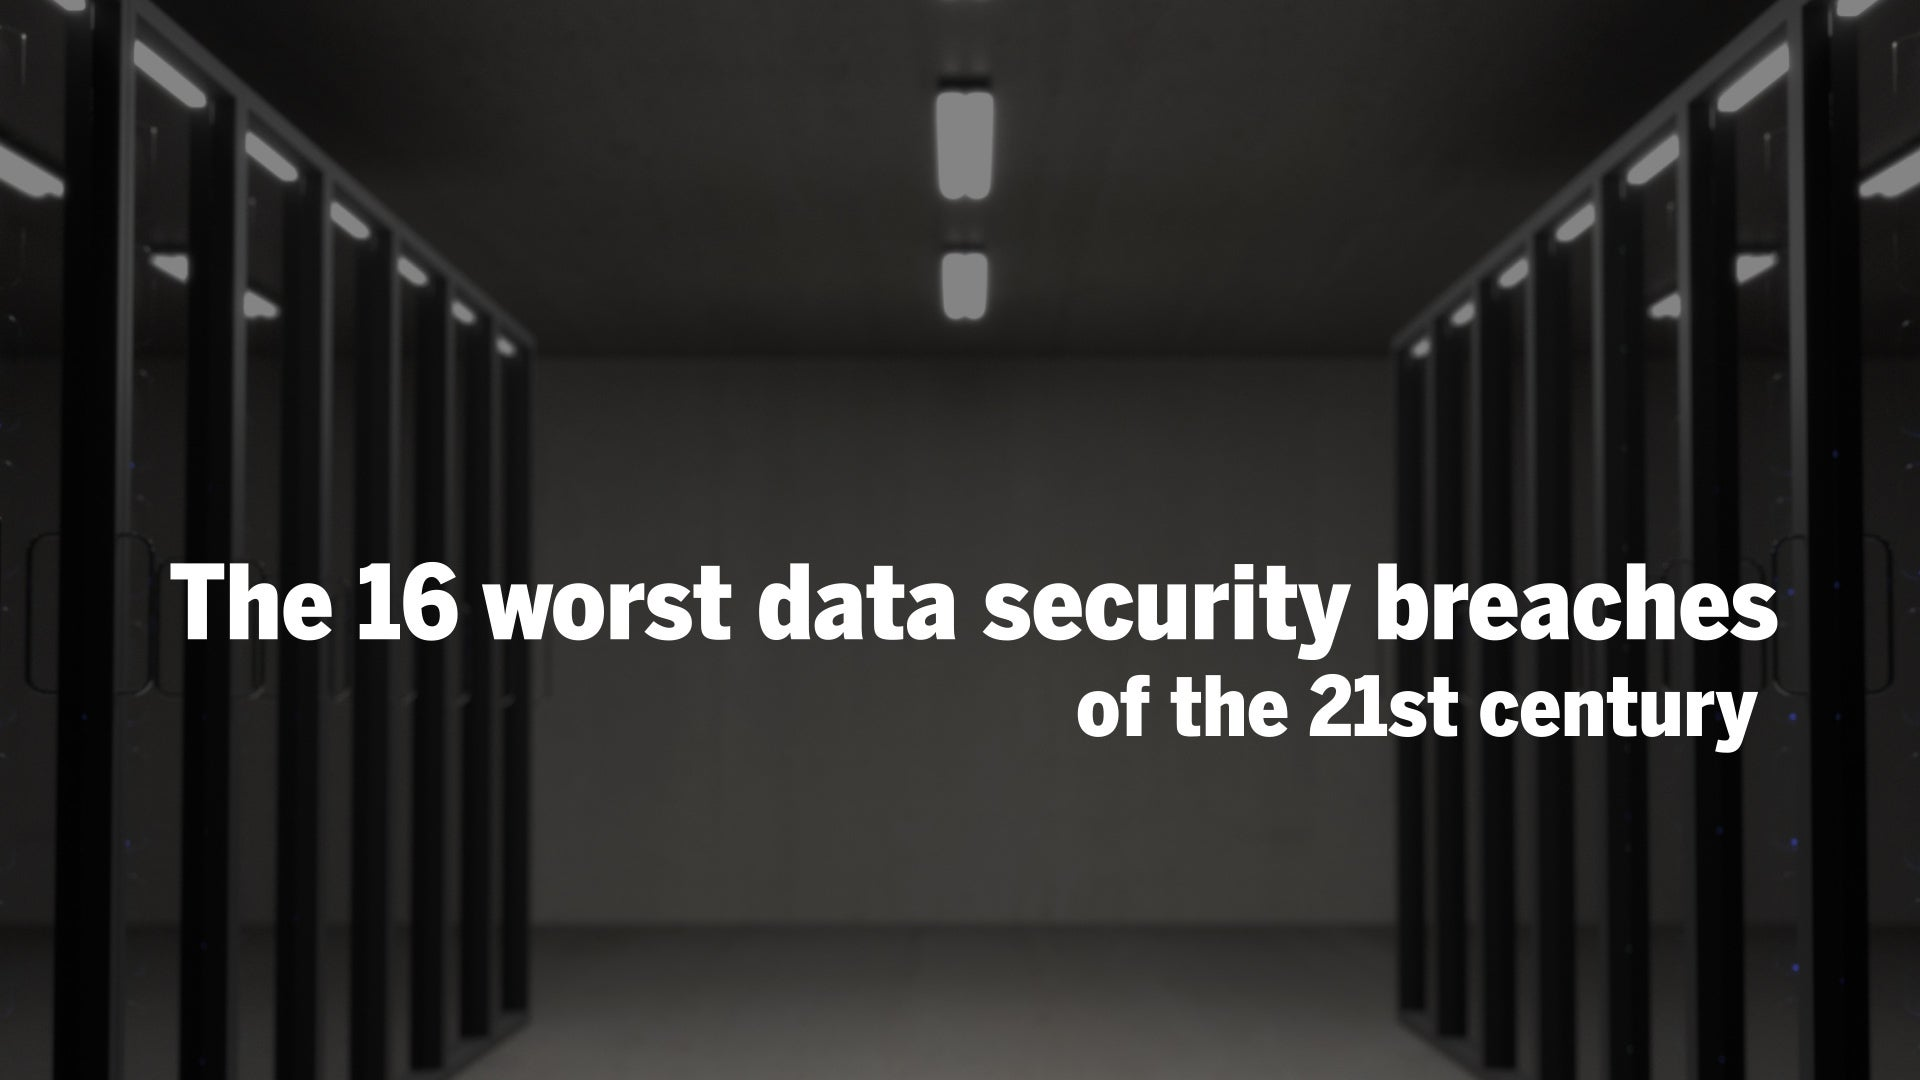 the 16 worst data security breaches